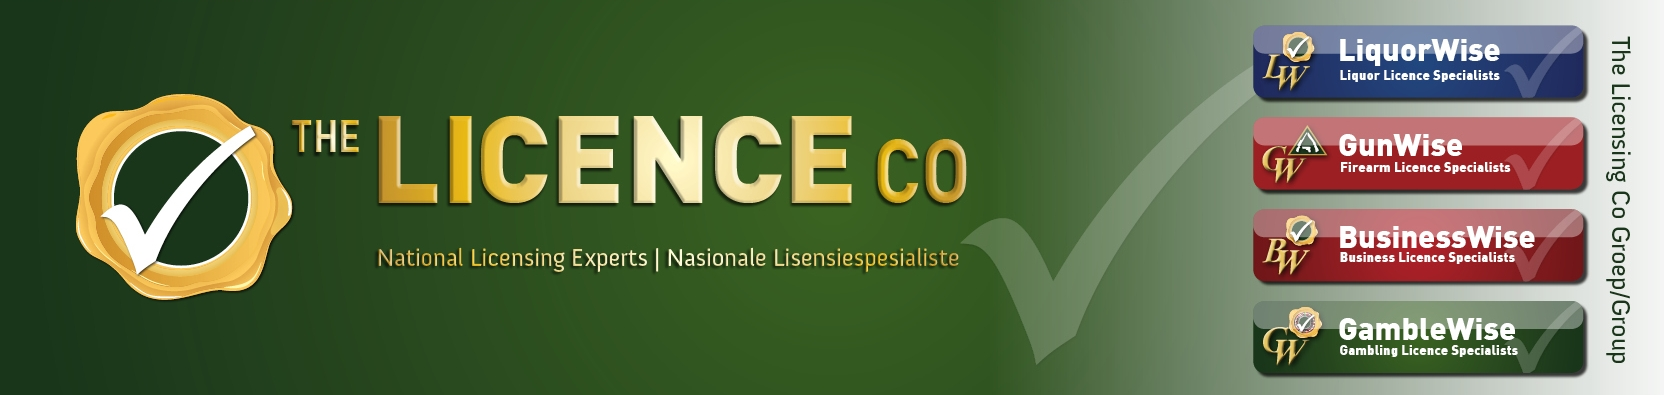 The Licence Co